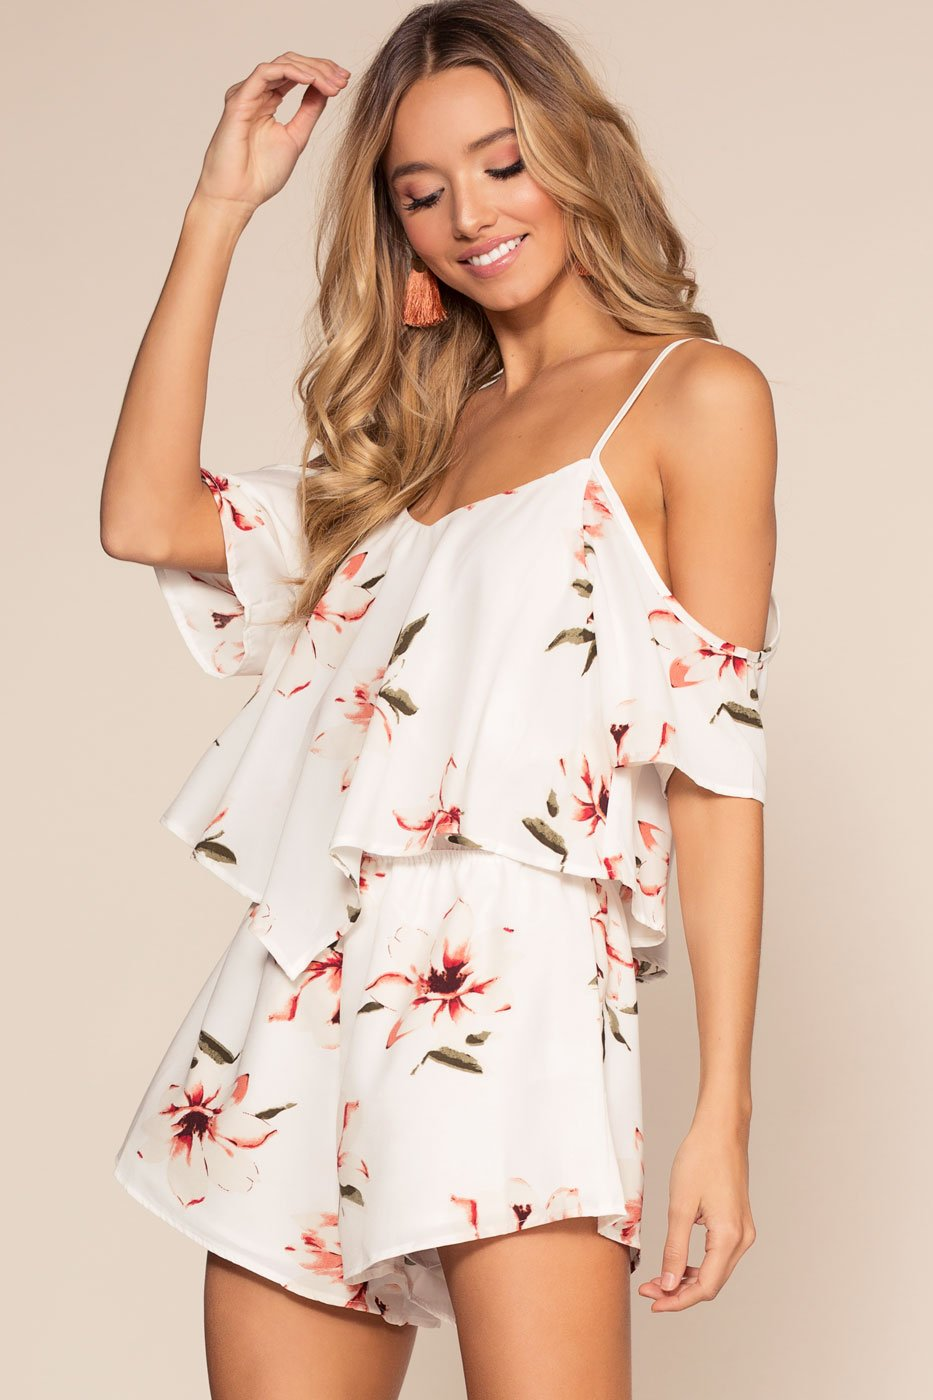 868617adc3e1 ... Rompers - Spring Oasis Floral Romper - Ivory ...